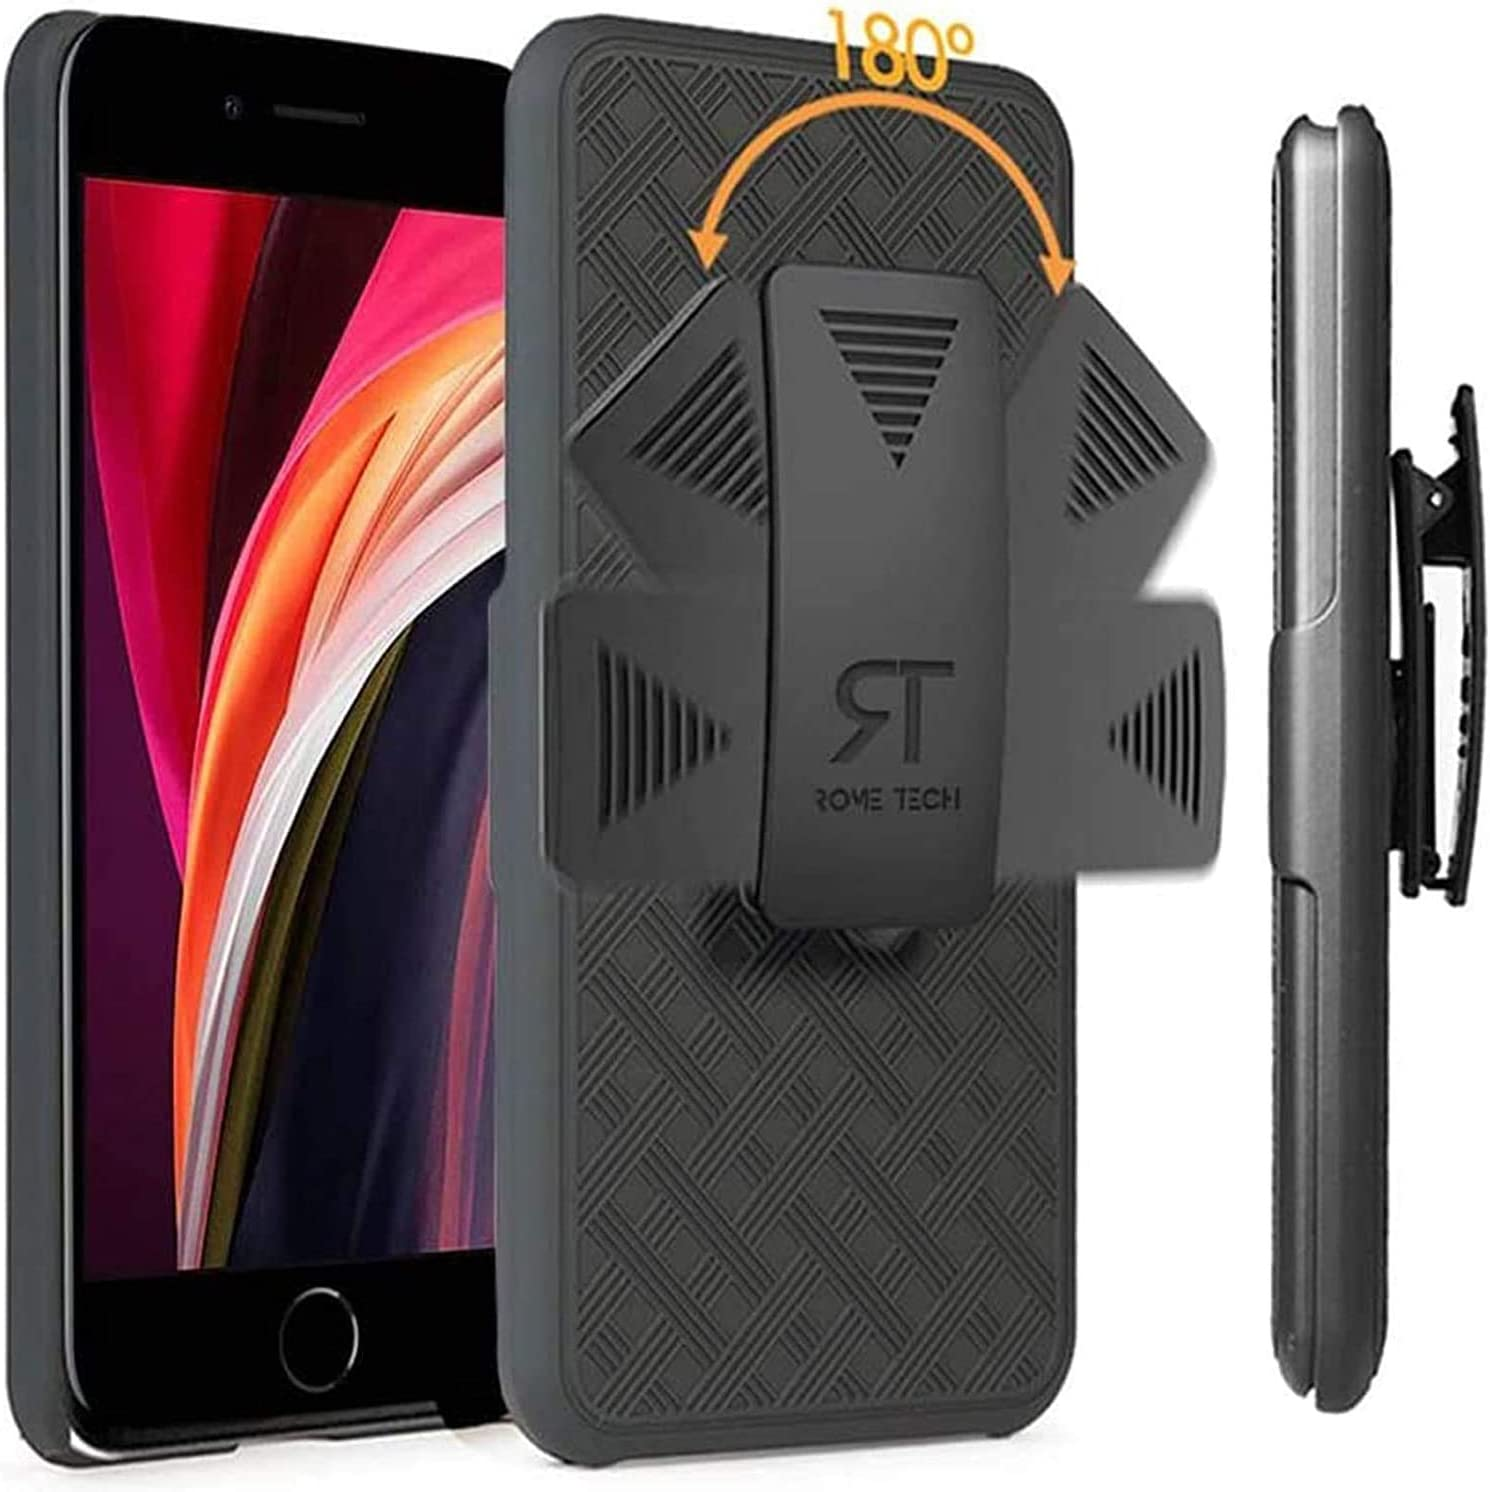 Rome Tech Holster Case with Belt Clip for 2020 Apple iPhone SE 2 / iPhone 7/8 - Slim Heavy Duty Shell Holster Combo - Rugged Phone Cover with Kickstand Compatible with Apple iPhone SE2 - Black